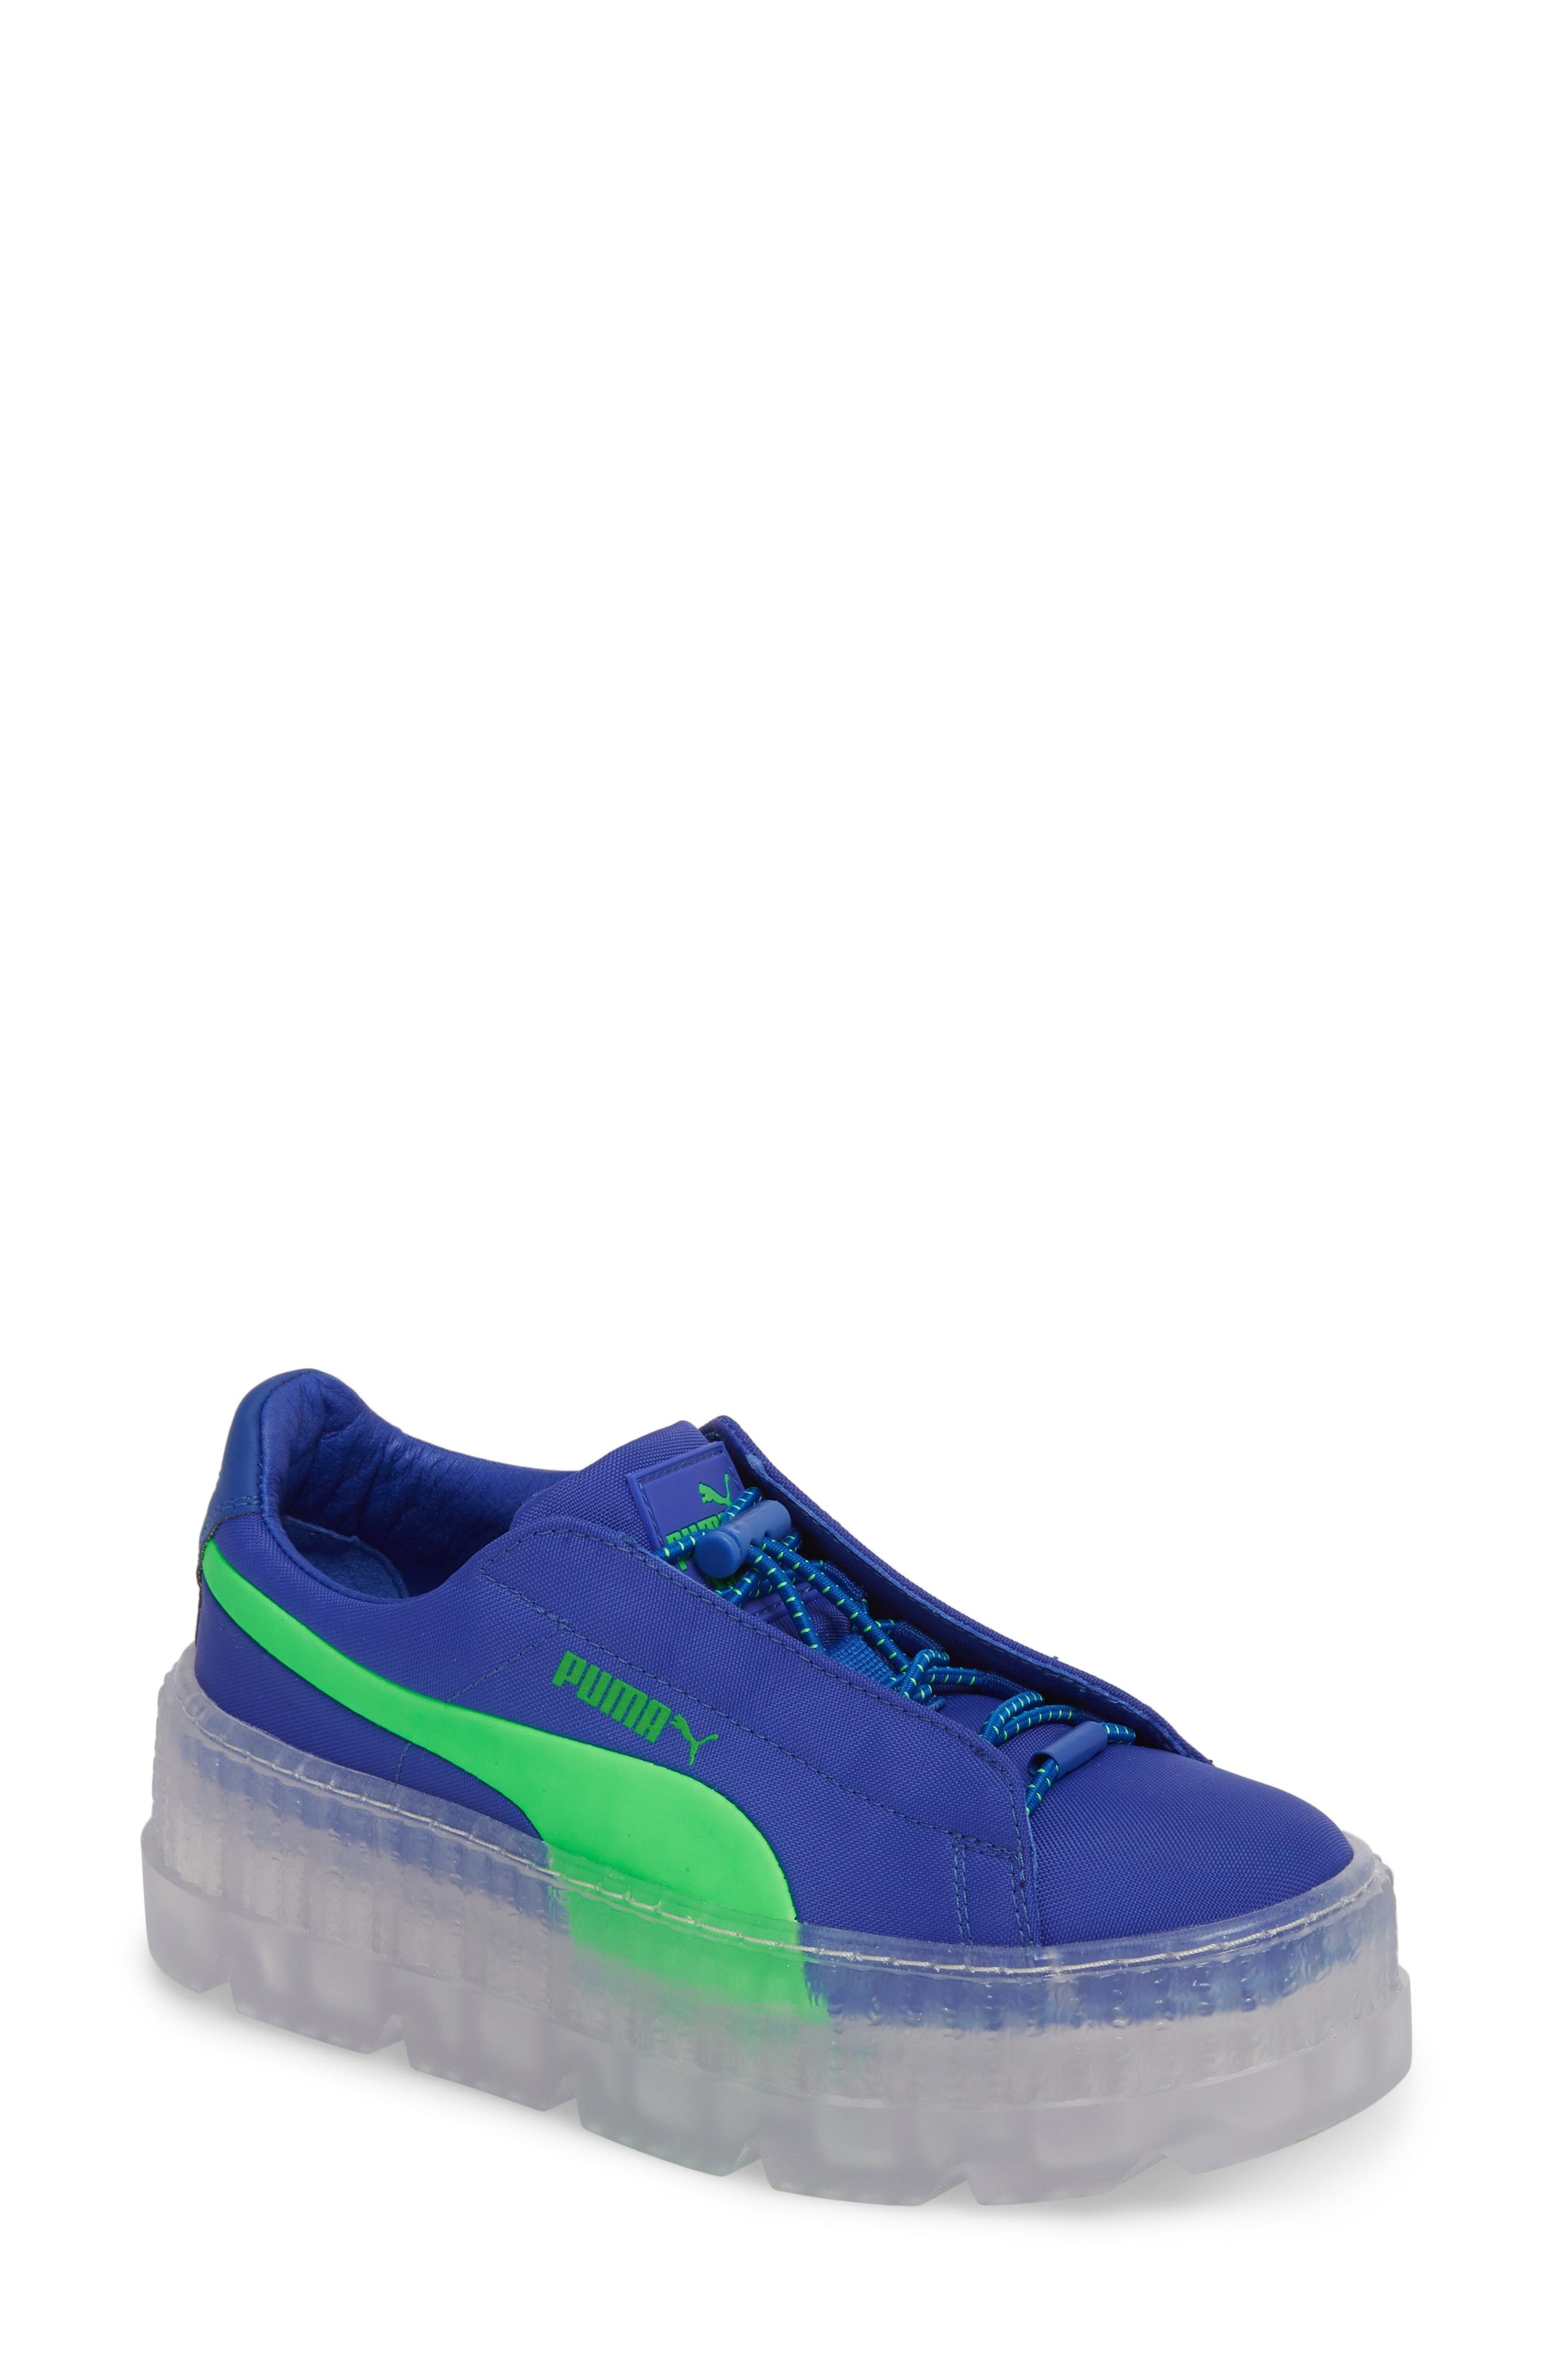 sale retailer 1d393 8d1c5 Fenty By Rihanna Cleated Creeper Sneaker